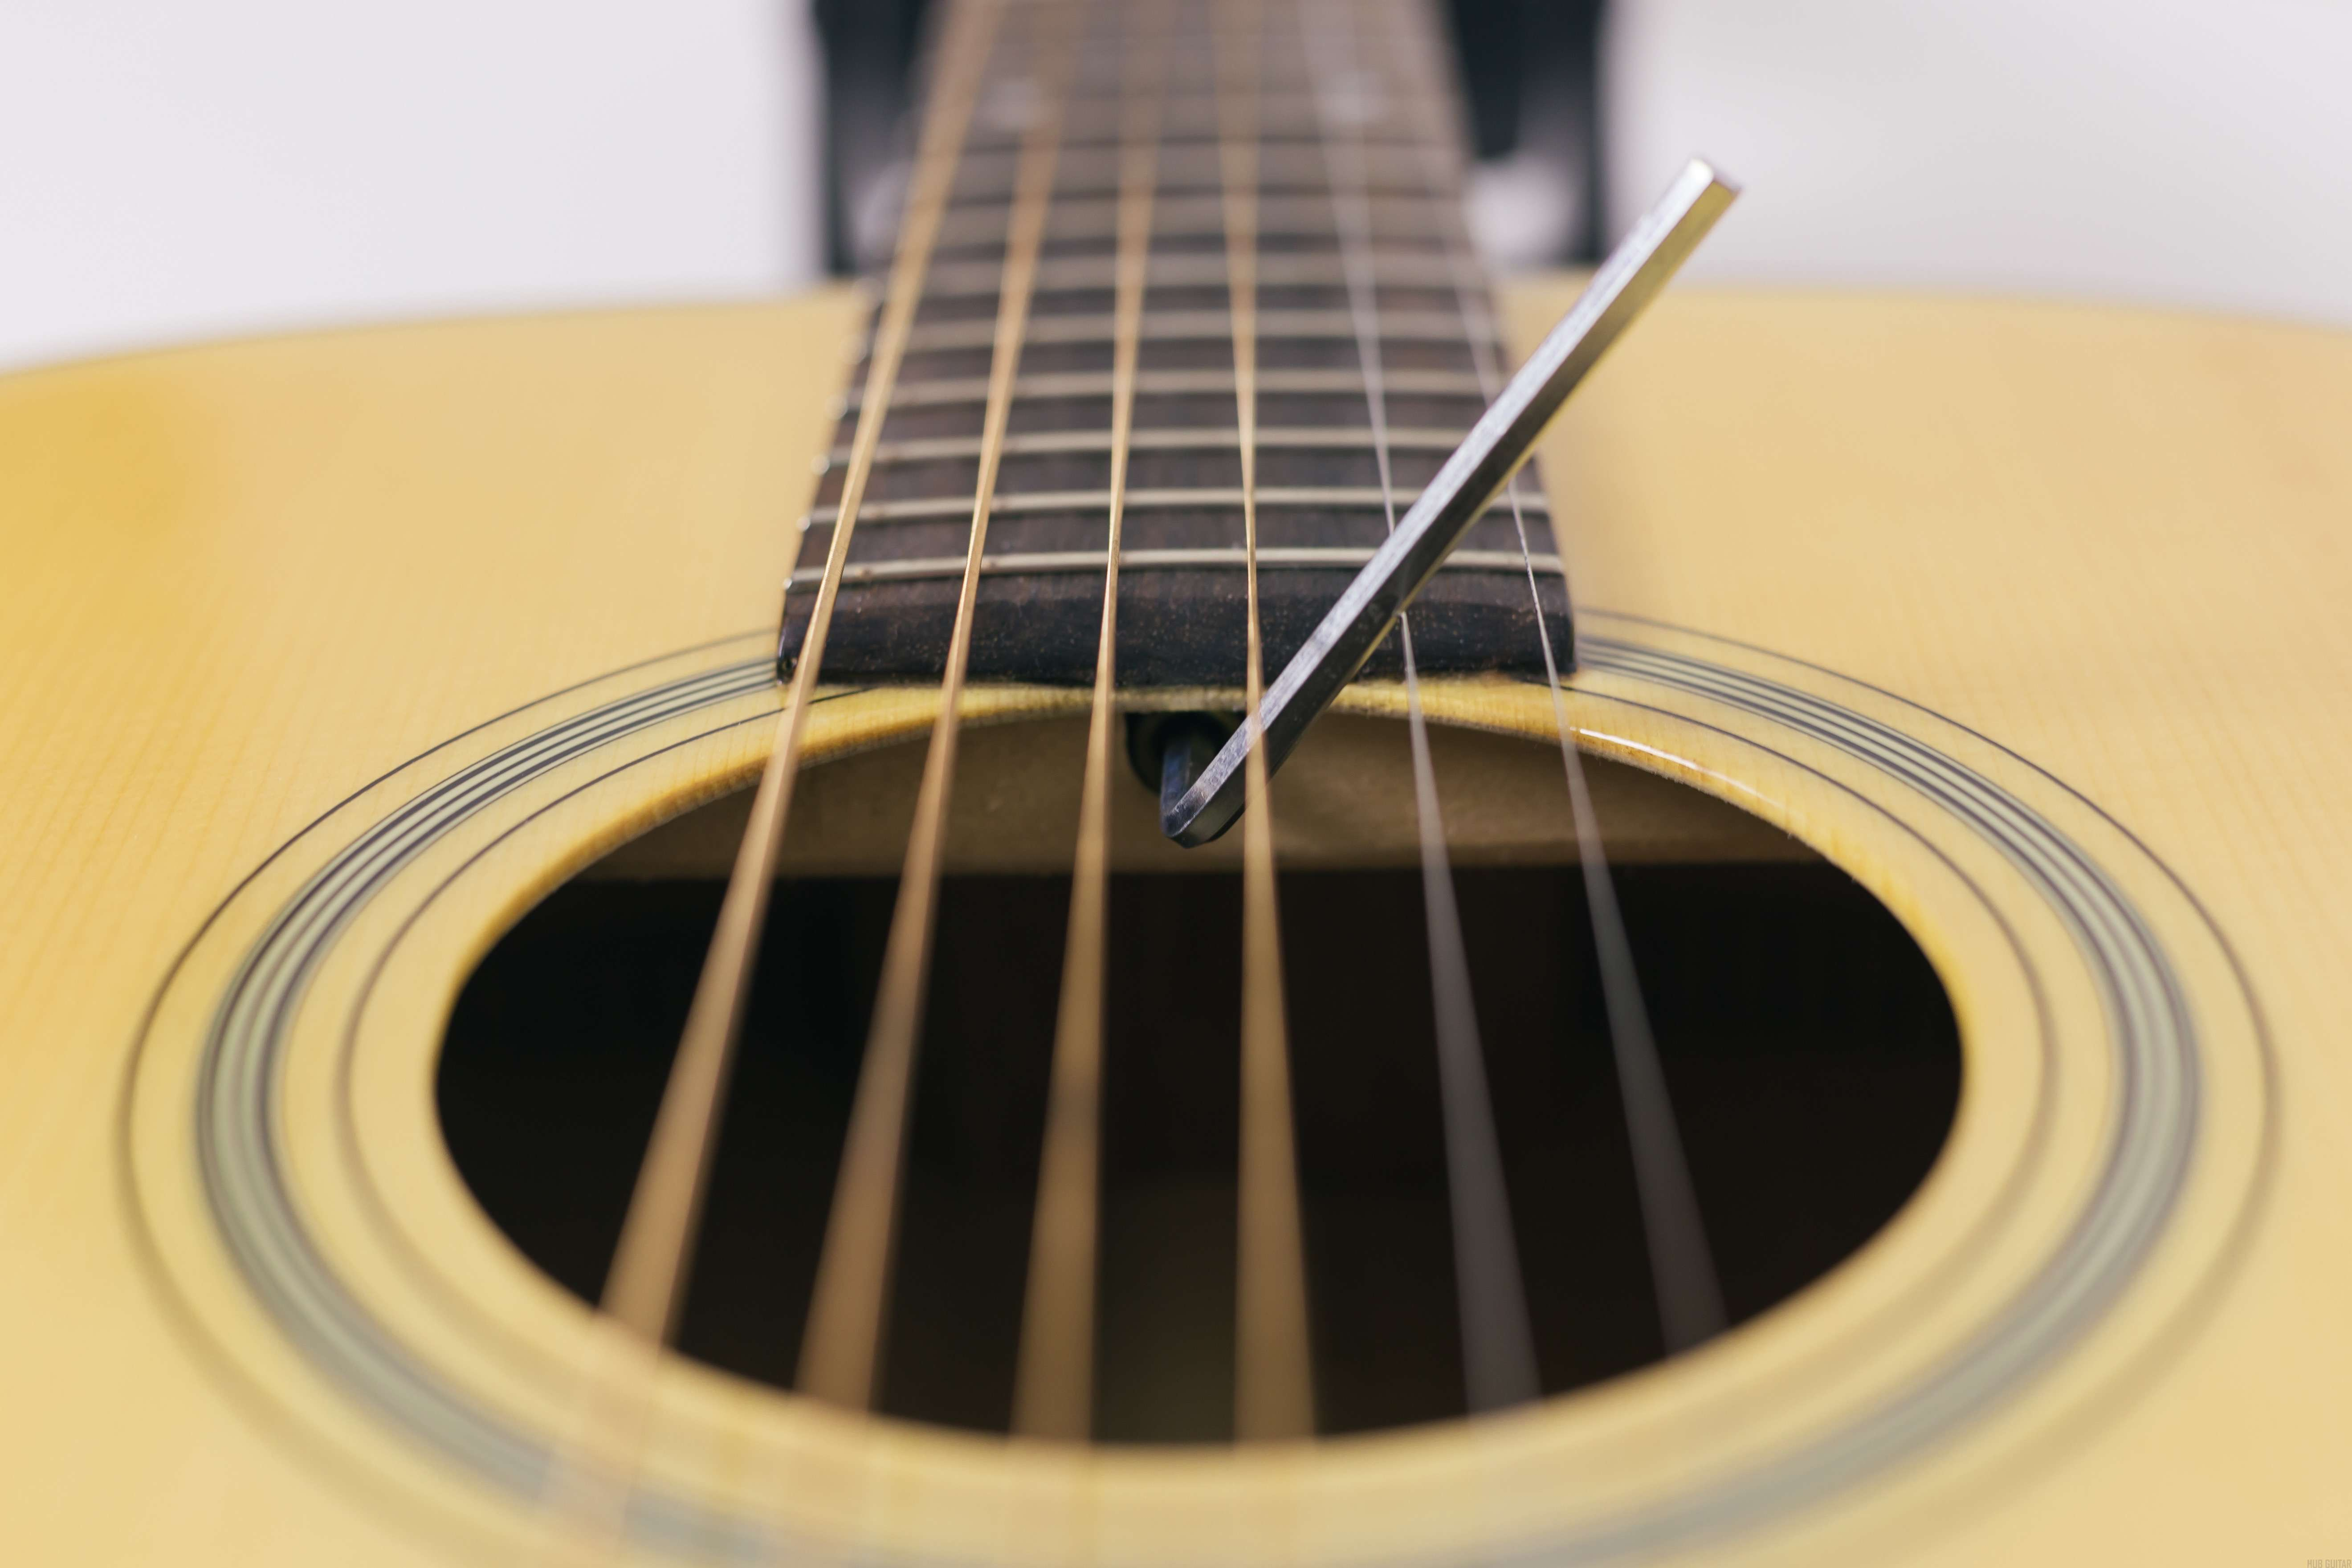 Common Setup Problems Affecting Beginners Hub Guitar Wiring Issues The Truss Rod Is Often Adjusted By Inserting A Wrench Through Soundhole